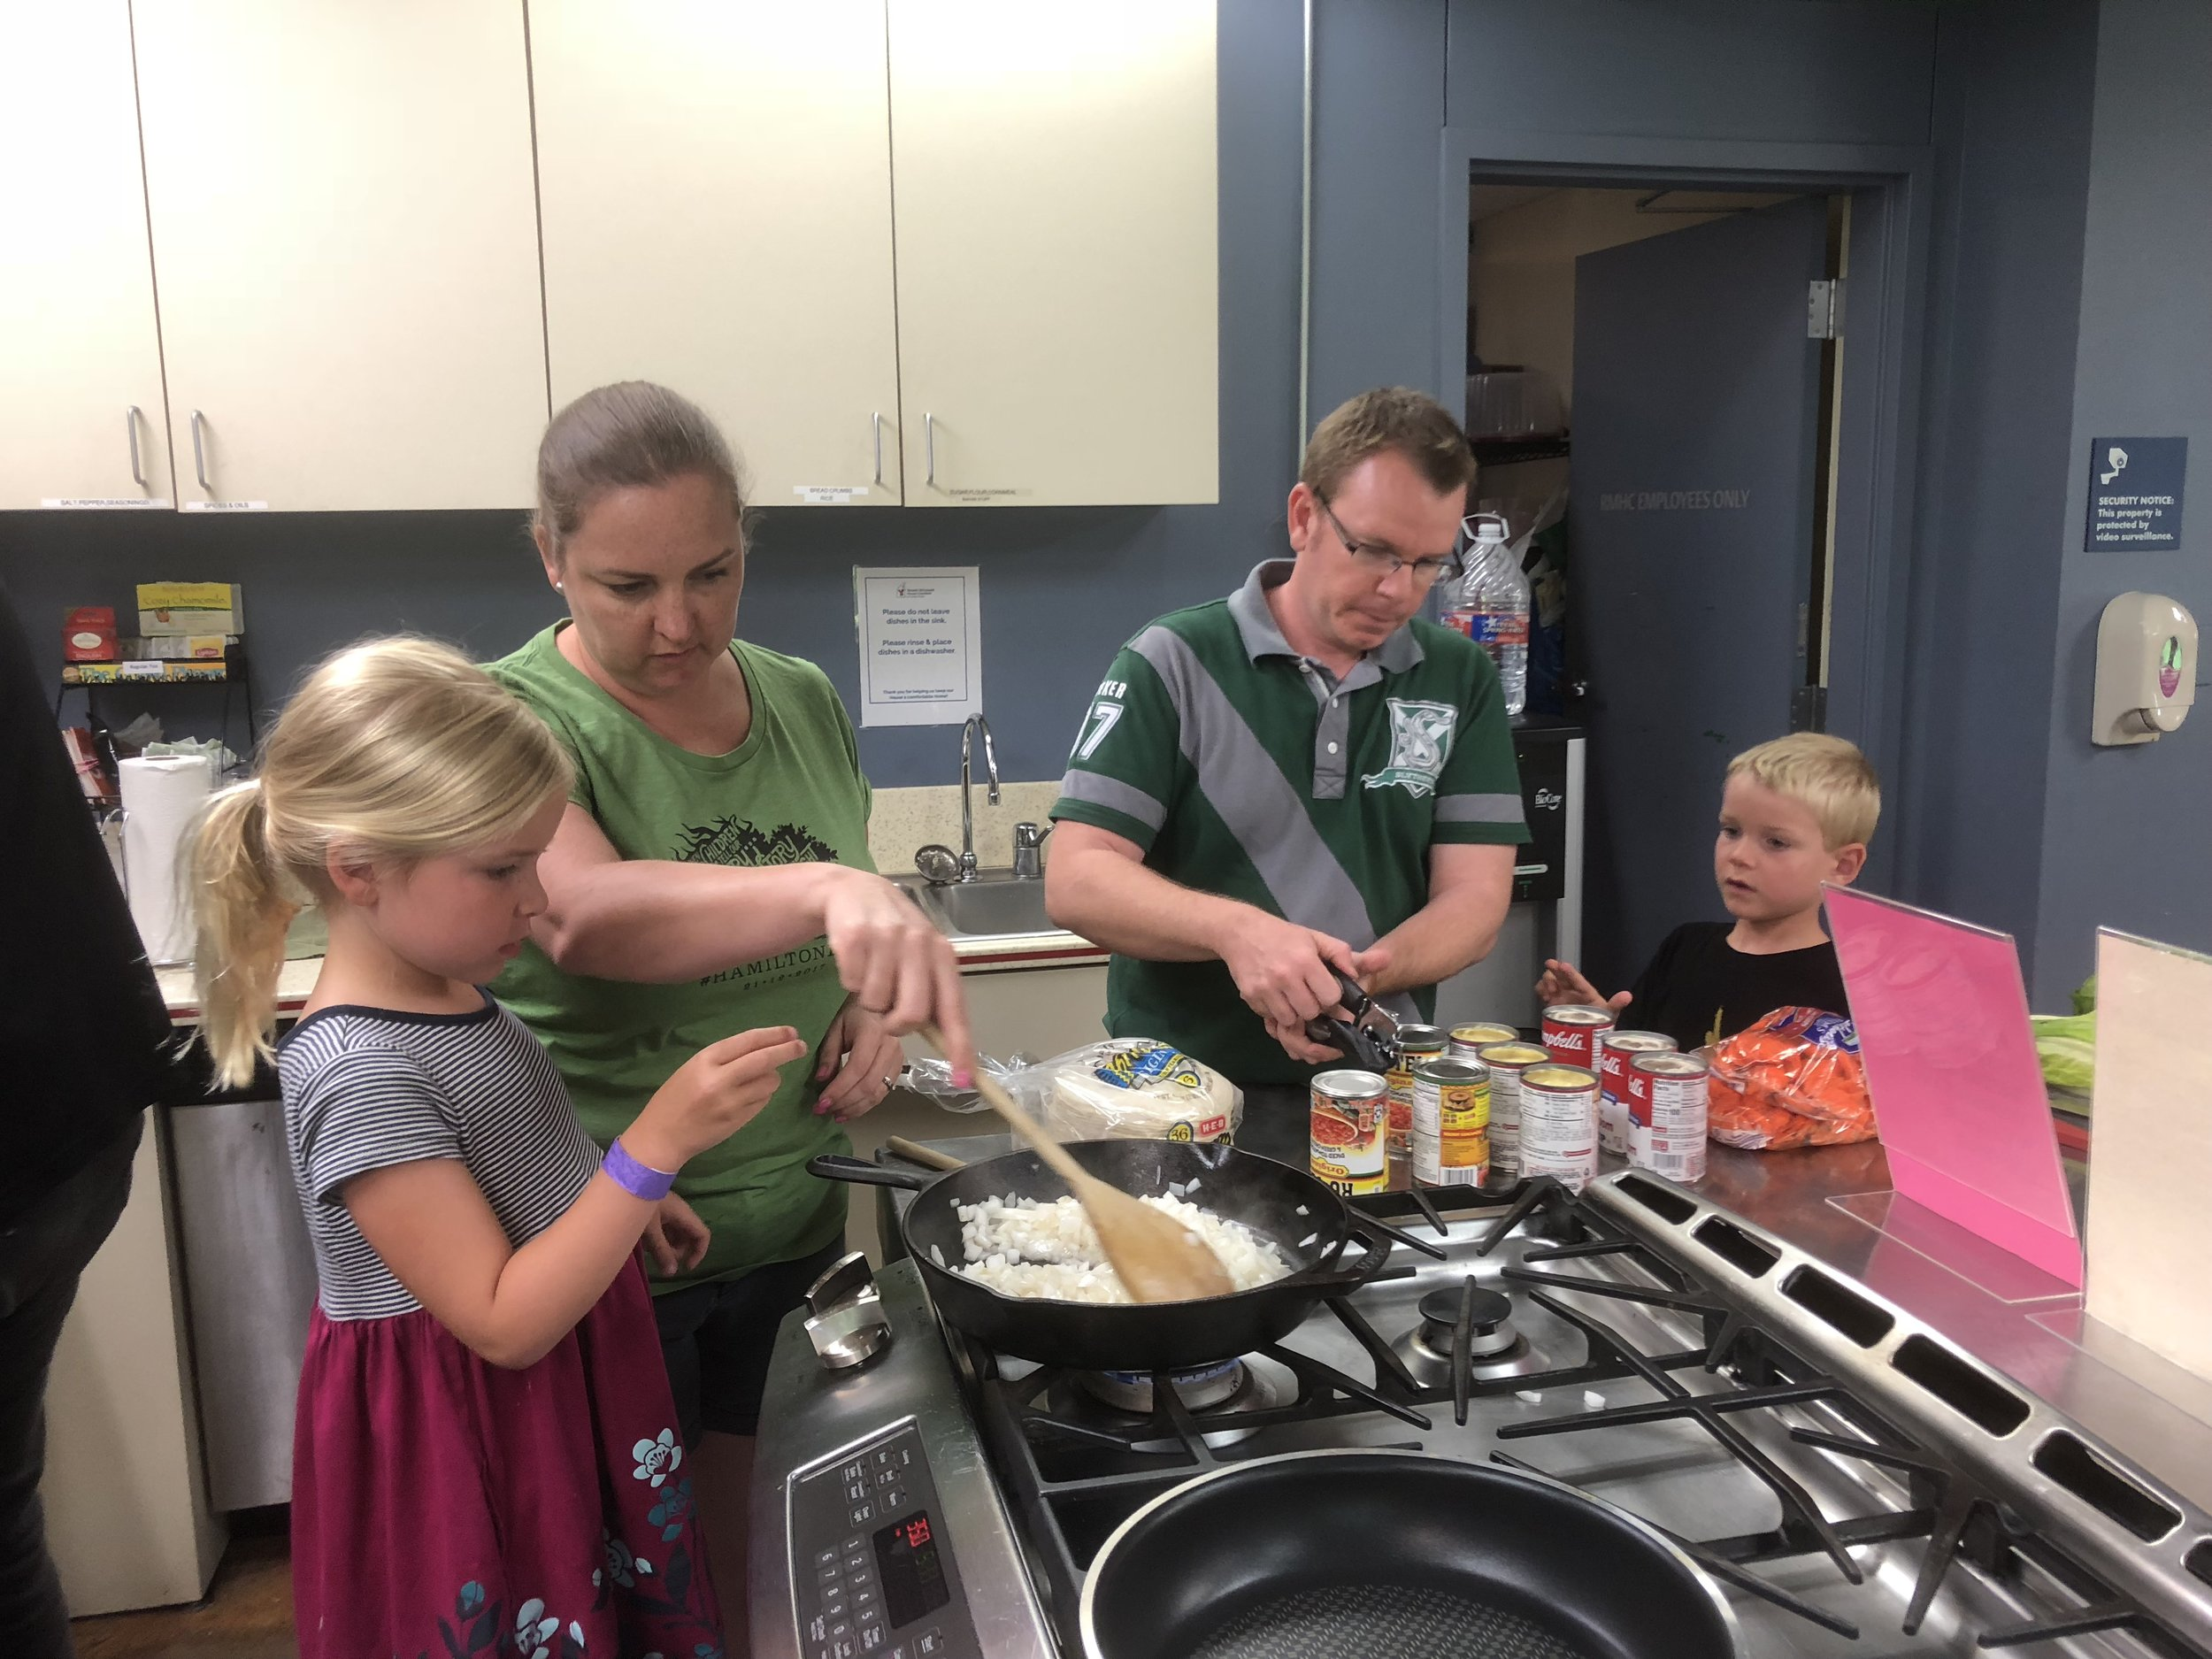 Daniel and his family enjoy cooking meals for the families at Ronald McDonald House.